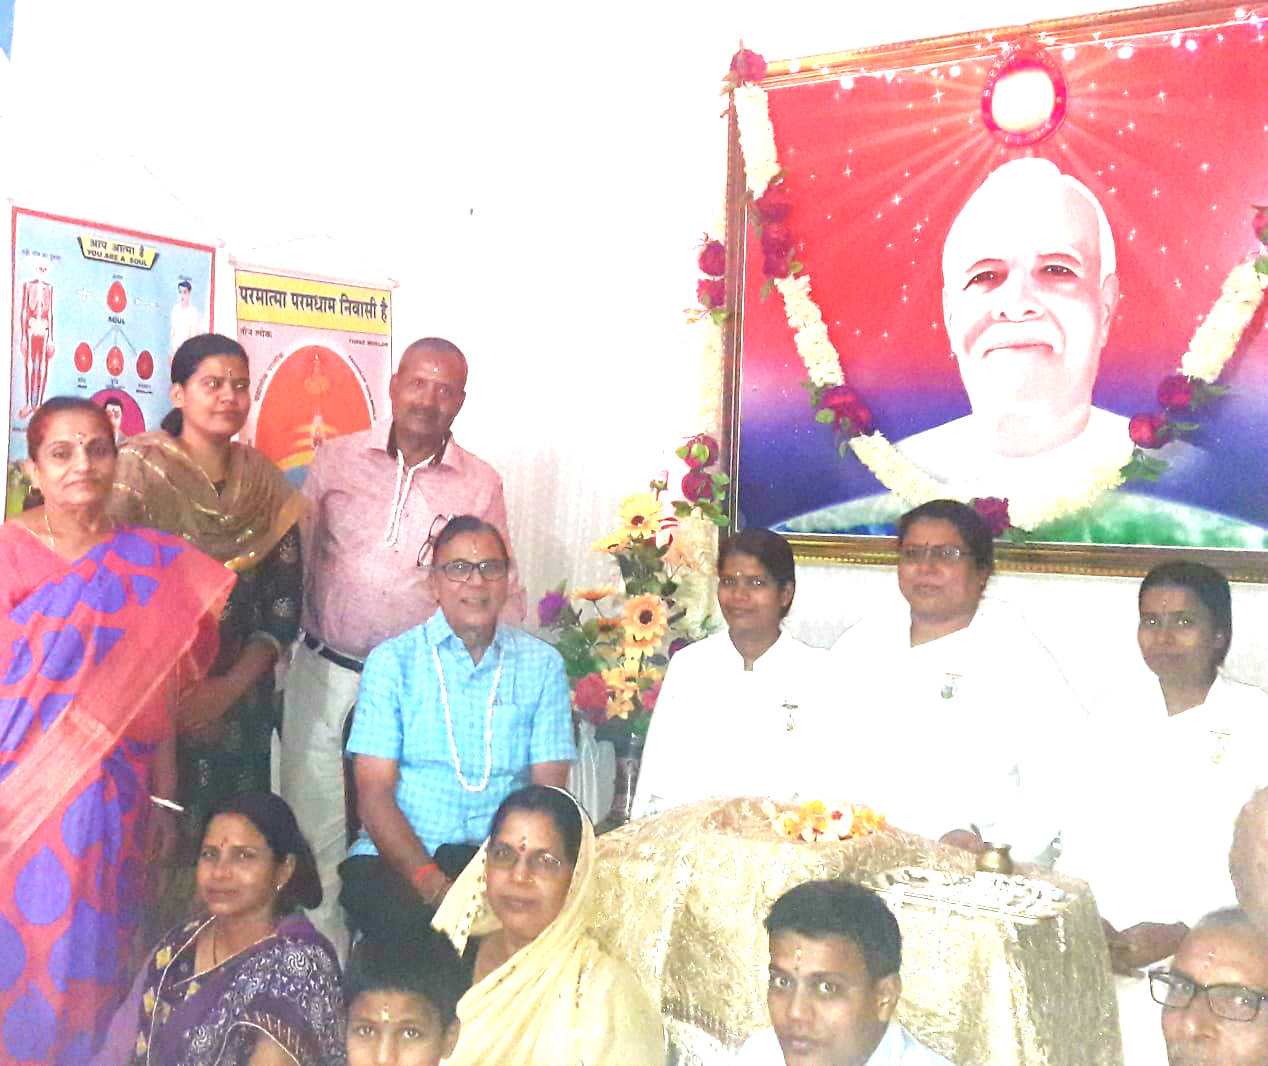 Dr.Madhepuri celebrating Bhaiya Doose alongwith Brahma Kumari Ranju Didi, Janki , Durga, Sanjita, Dr.NK Nirala and others at Madhepura.